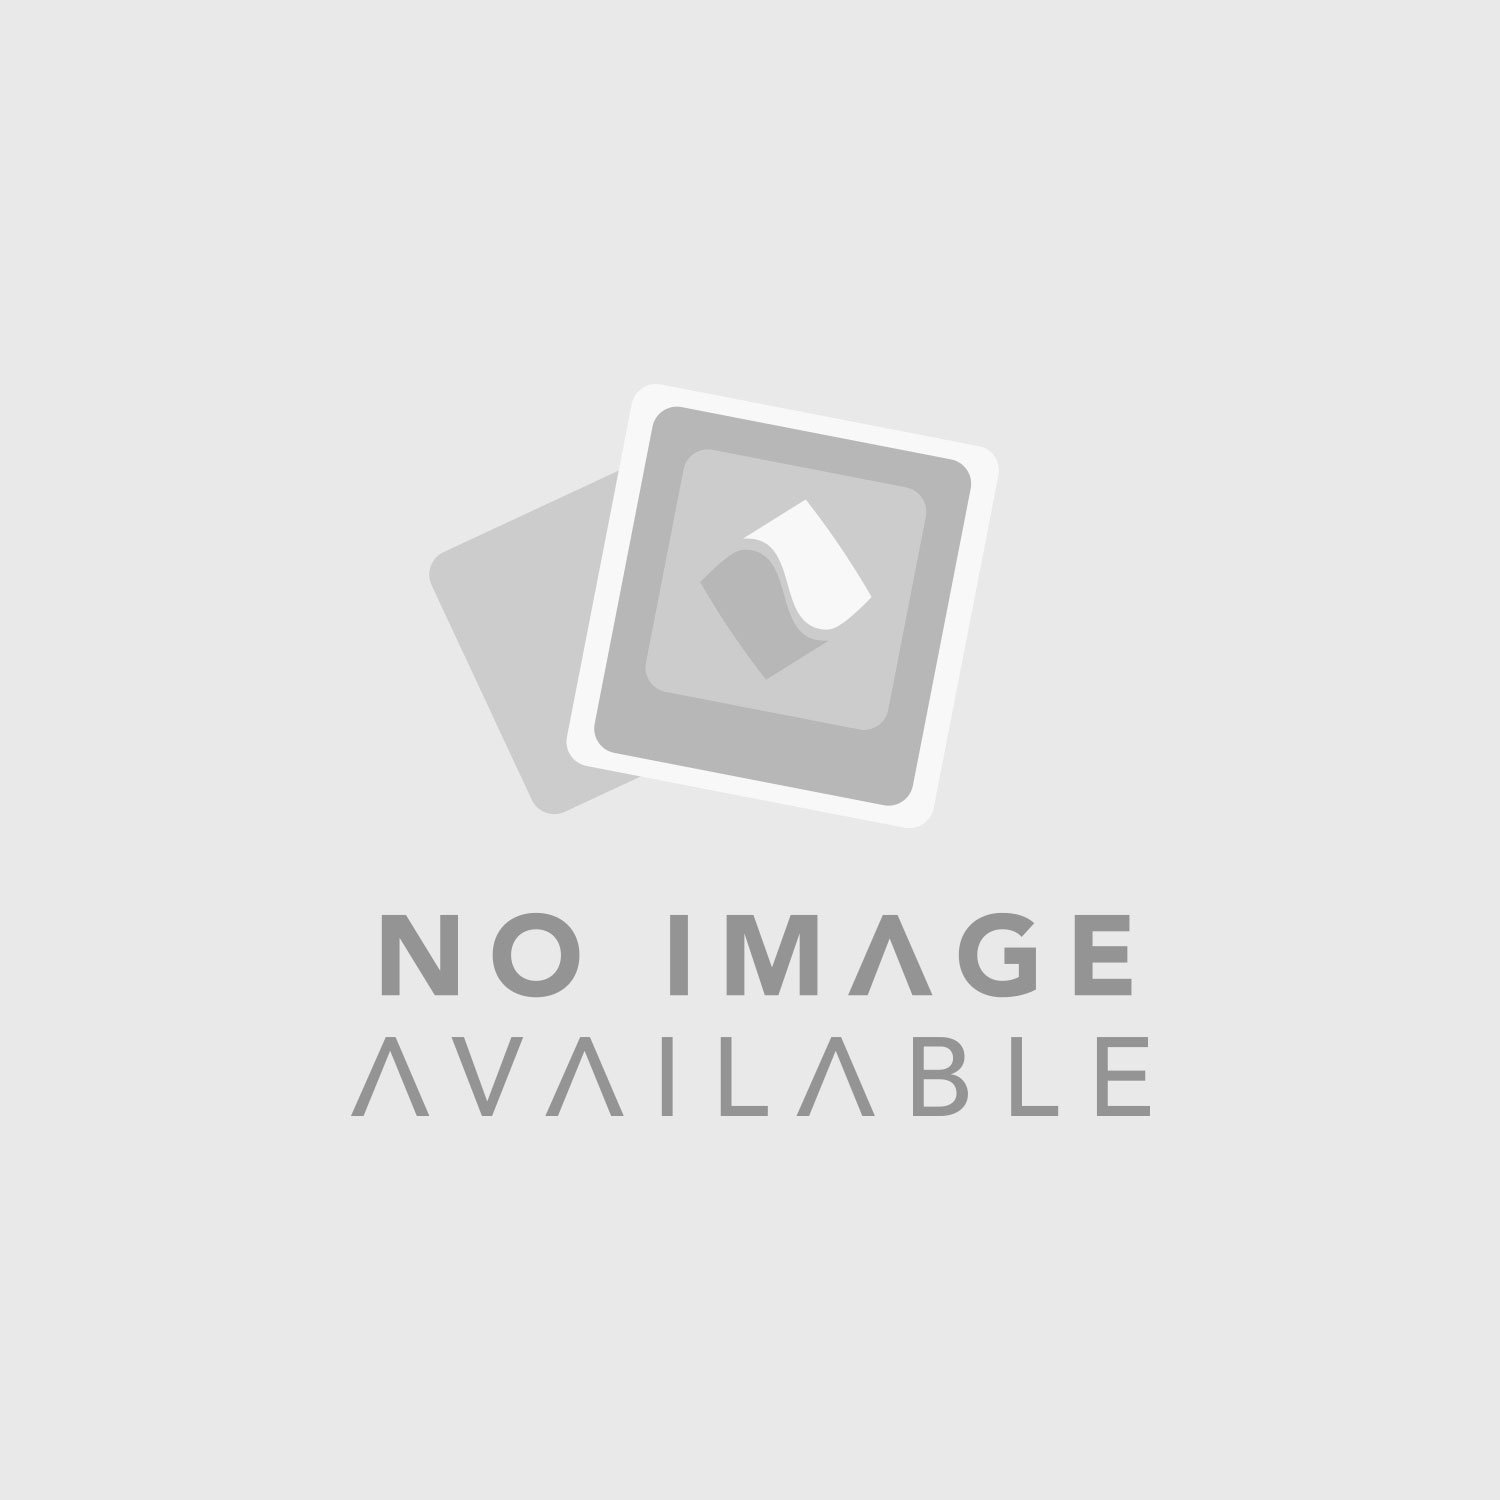 Soundcraft GB2 24 Channel Live Sound/Recording Console with 2 Stereo Channels & 2 Stereo Group Outs